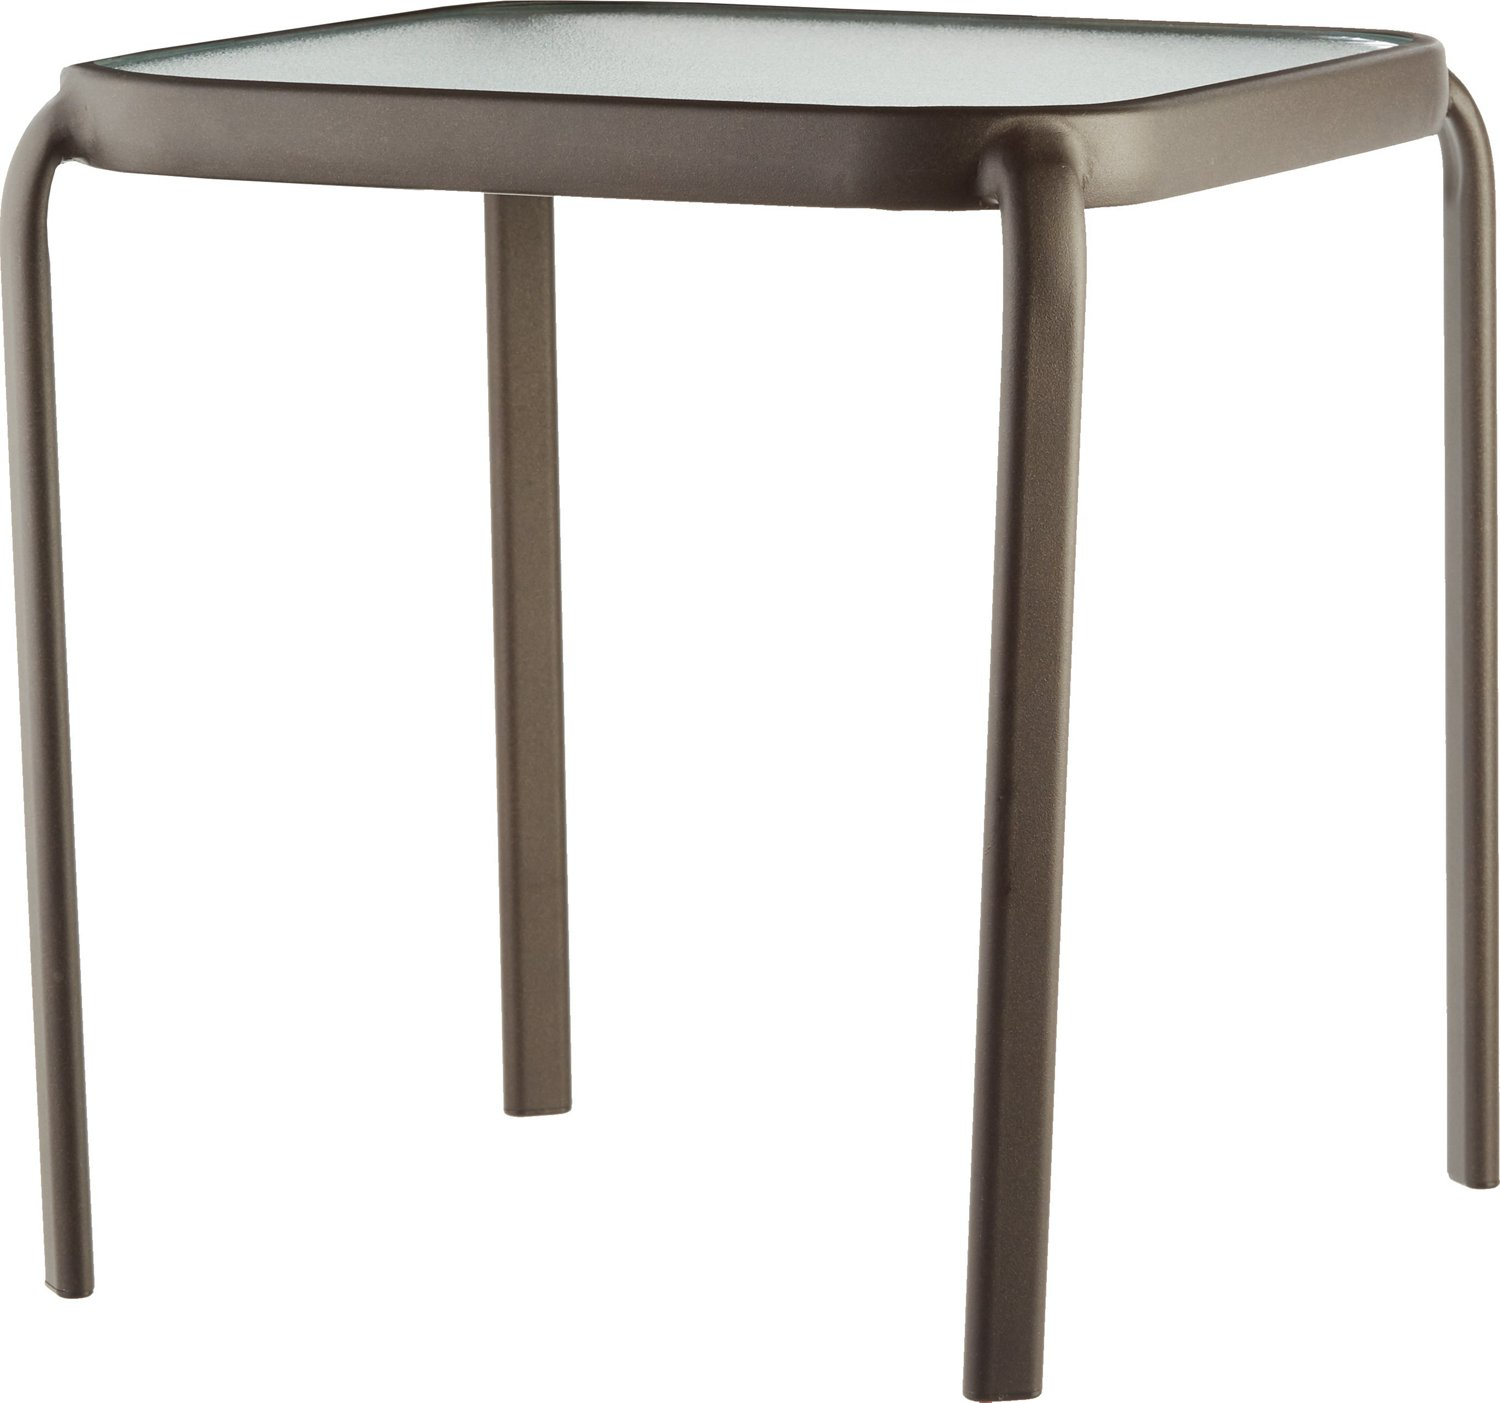 patio furniture academy mosaic outdoor side table display product reviews for laflorn chairside end vintage replica grey wall clock whole lamp shades plexiglass coffee large floor